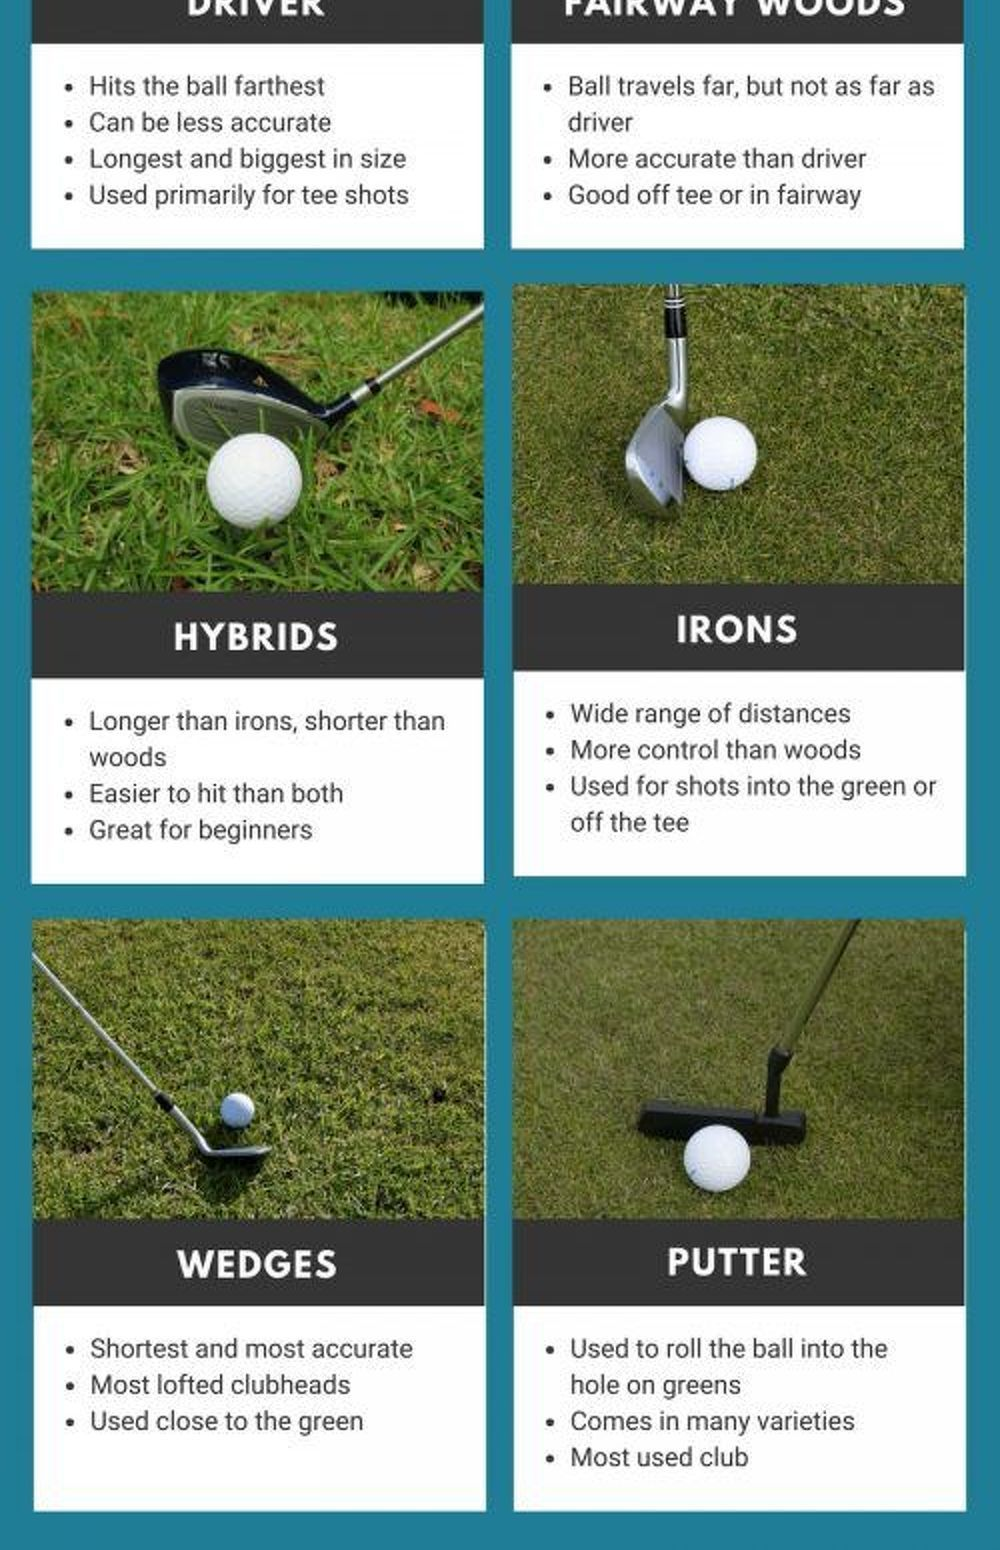 Golf Club Names And Uses A Beginner S Guide To Types Of Golf Clubs Golf Chipping Tips For In 2020 Golf Chipping Tips Golf Chipping Chipping Tips